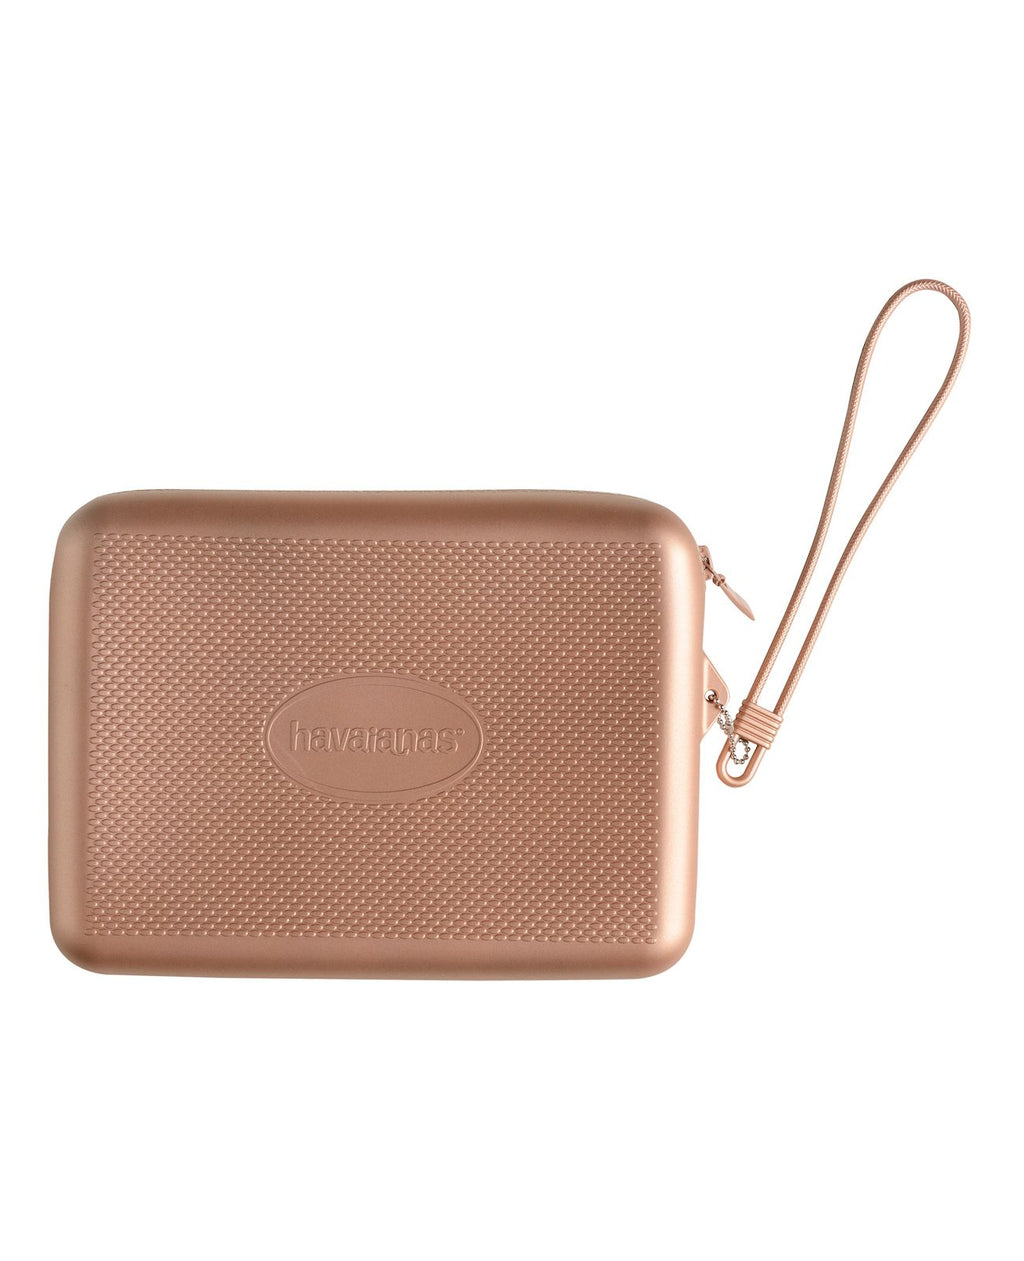 HAVAIANAS BEACH NECESSAIRE - METALLIC GOLDEN BLUSH